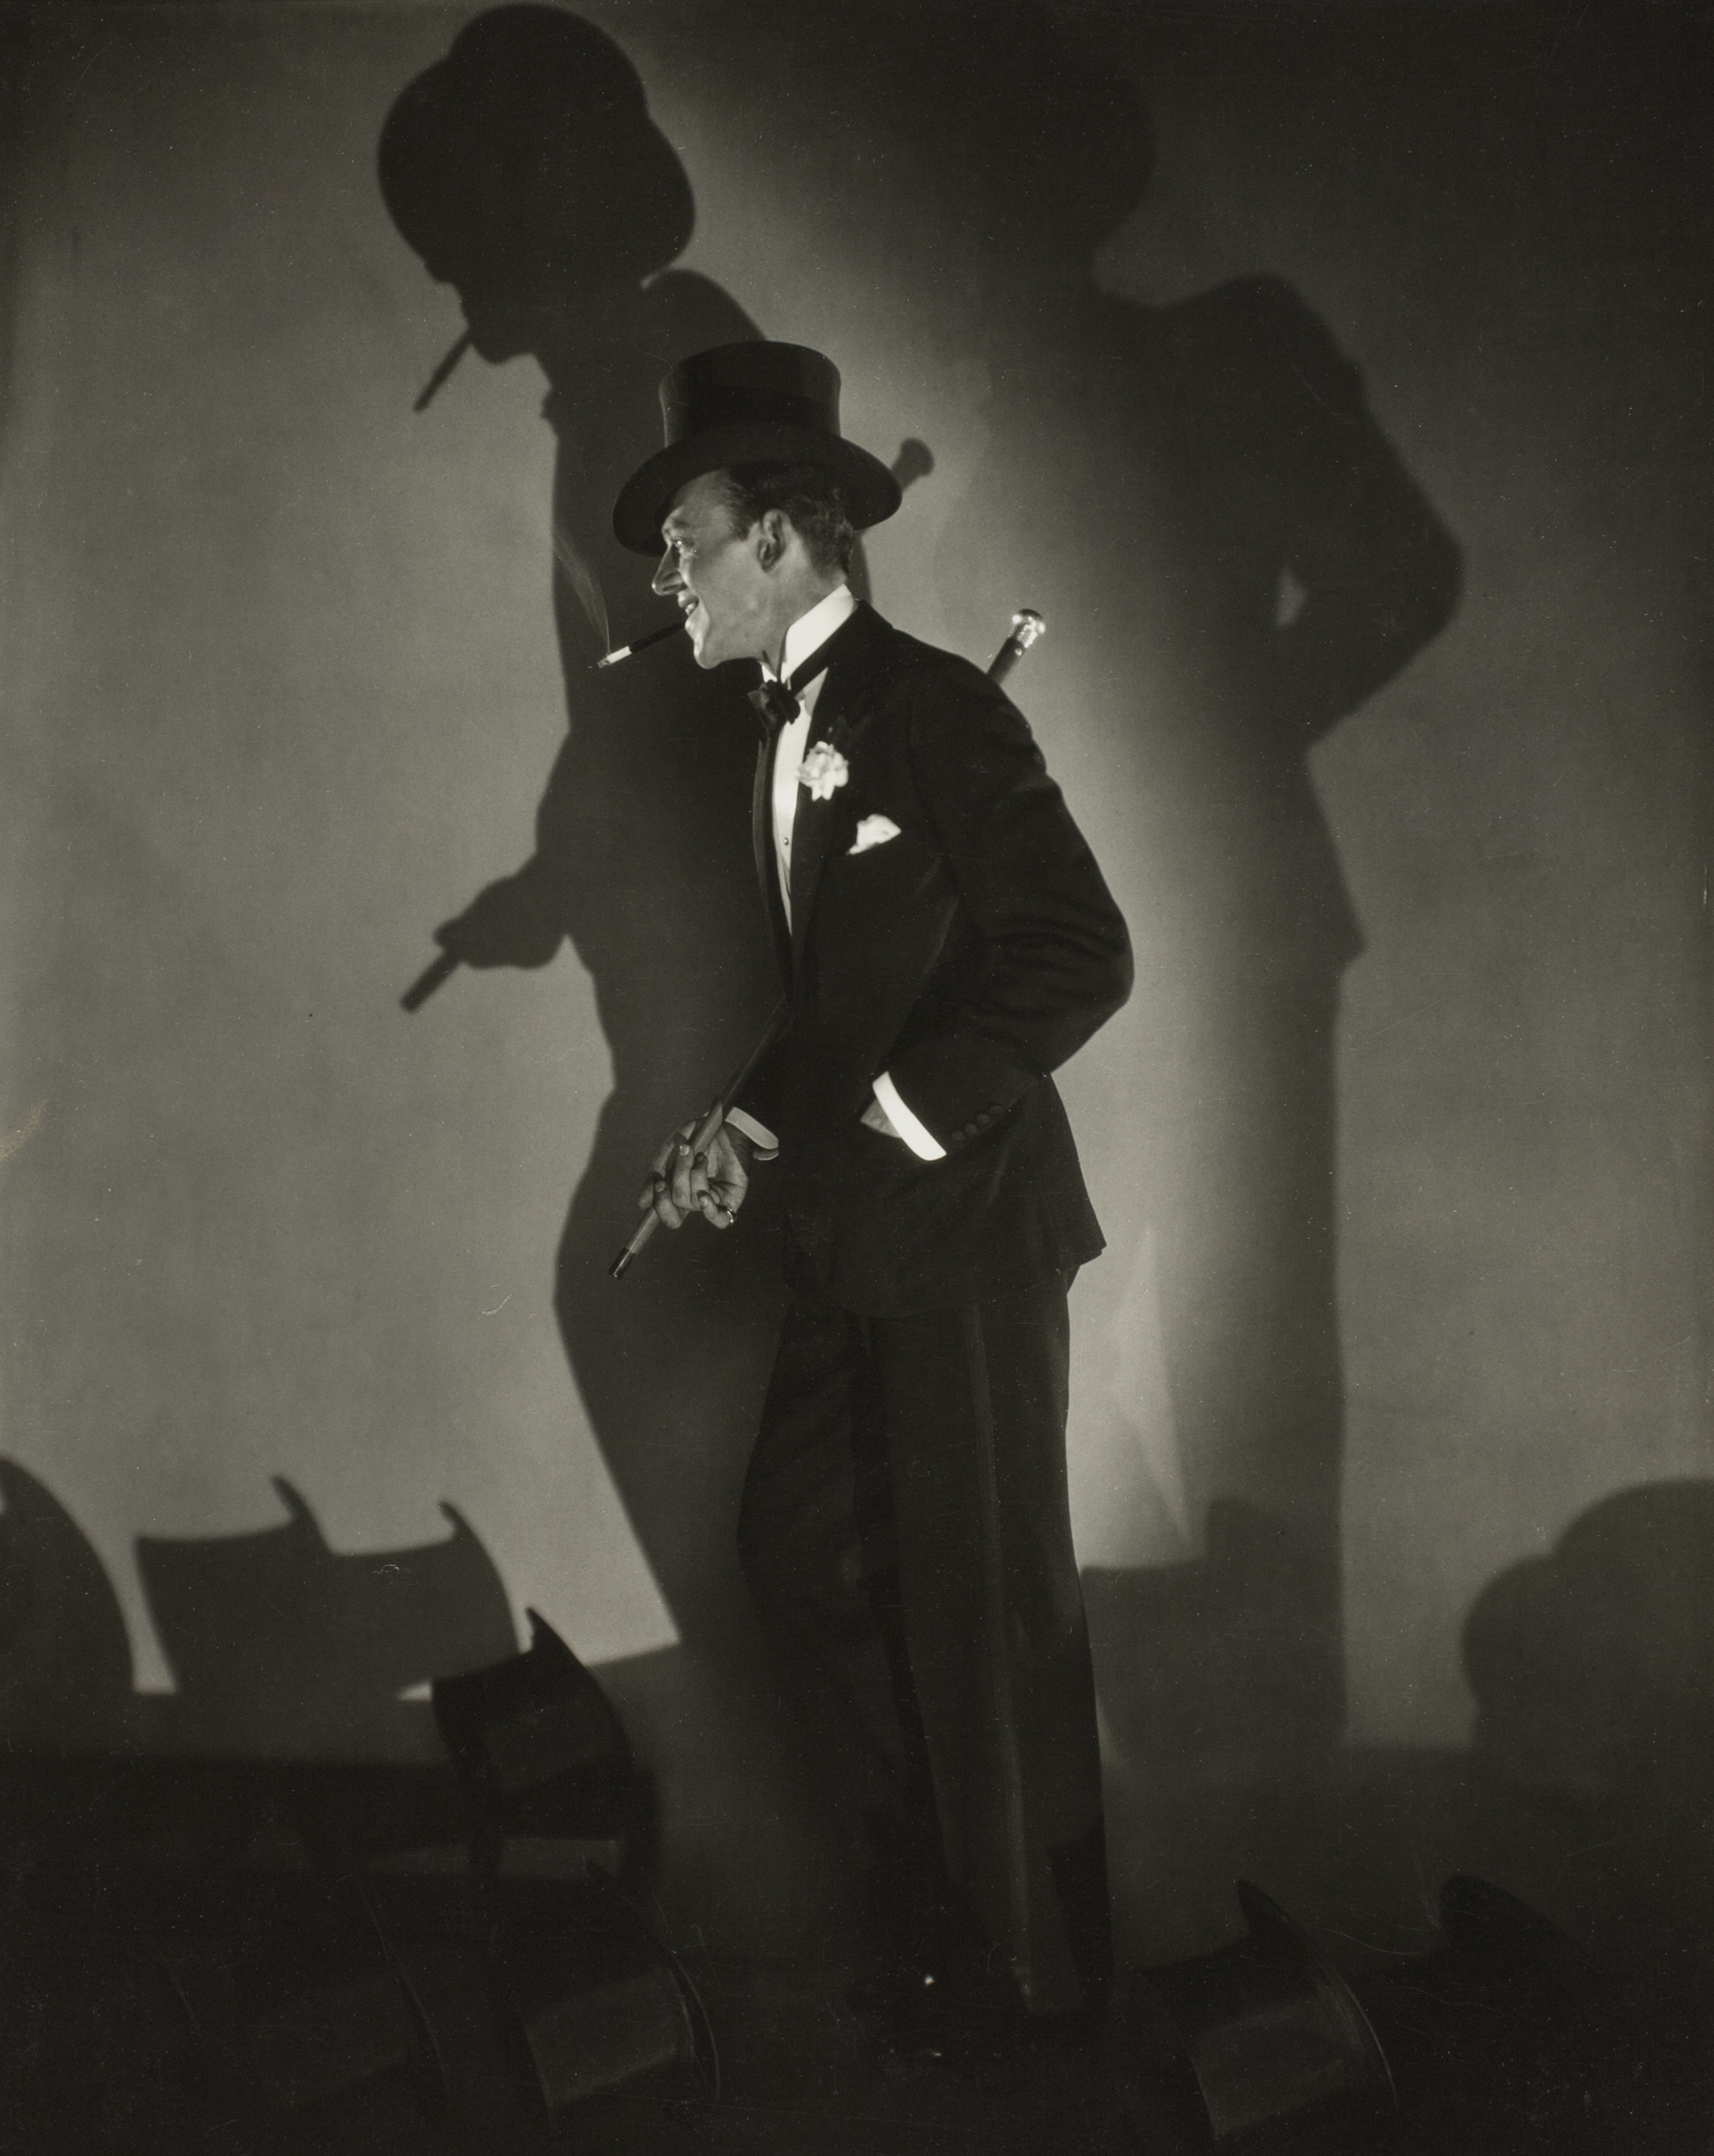 Edward Steichen. Fred Astaire in Funny Face, 1927. The Art Institute of Chicago, Bequest of Edward Steichen by direction of Joanna T. Steichen and George Eastman House. © 2014 The Estate of Edward Steichen/Artists Rights Society (ARS), New York.